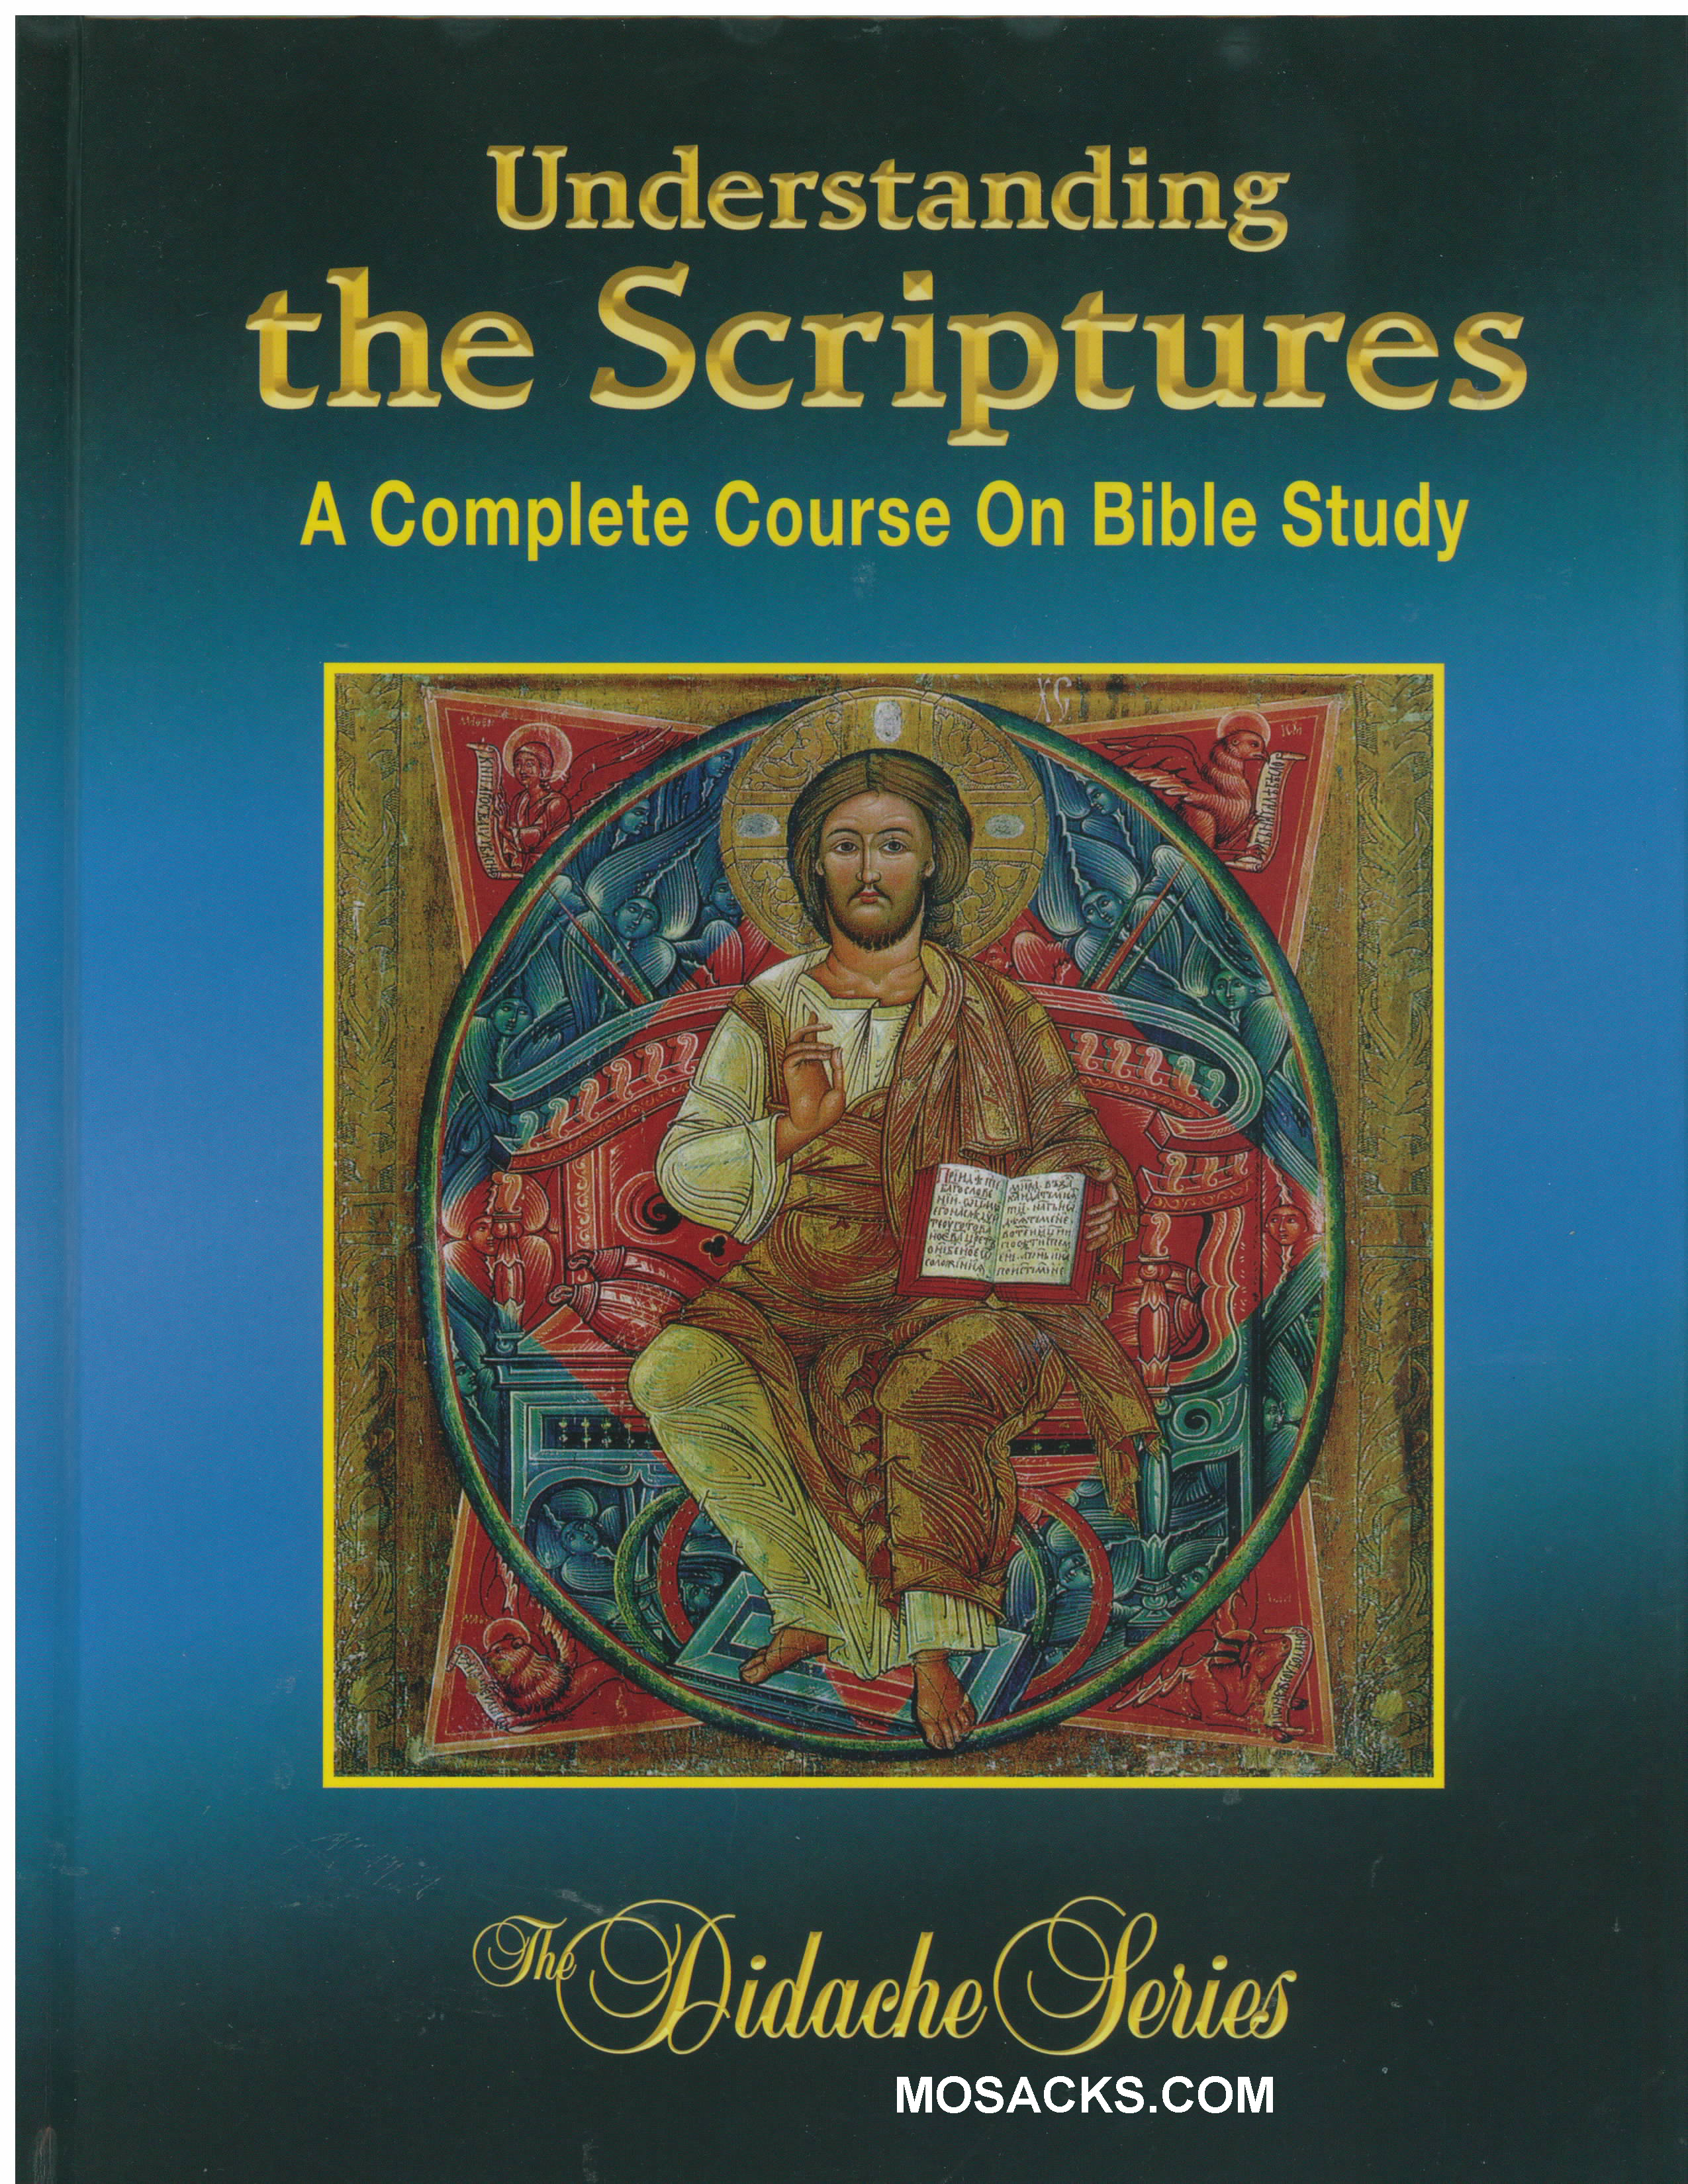 Didache Series Understanding the Scriptures: A Complete Course Hahn 77478